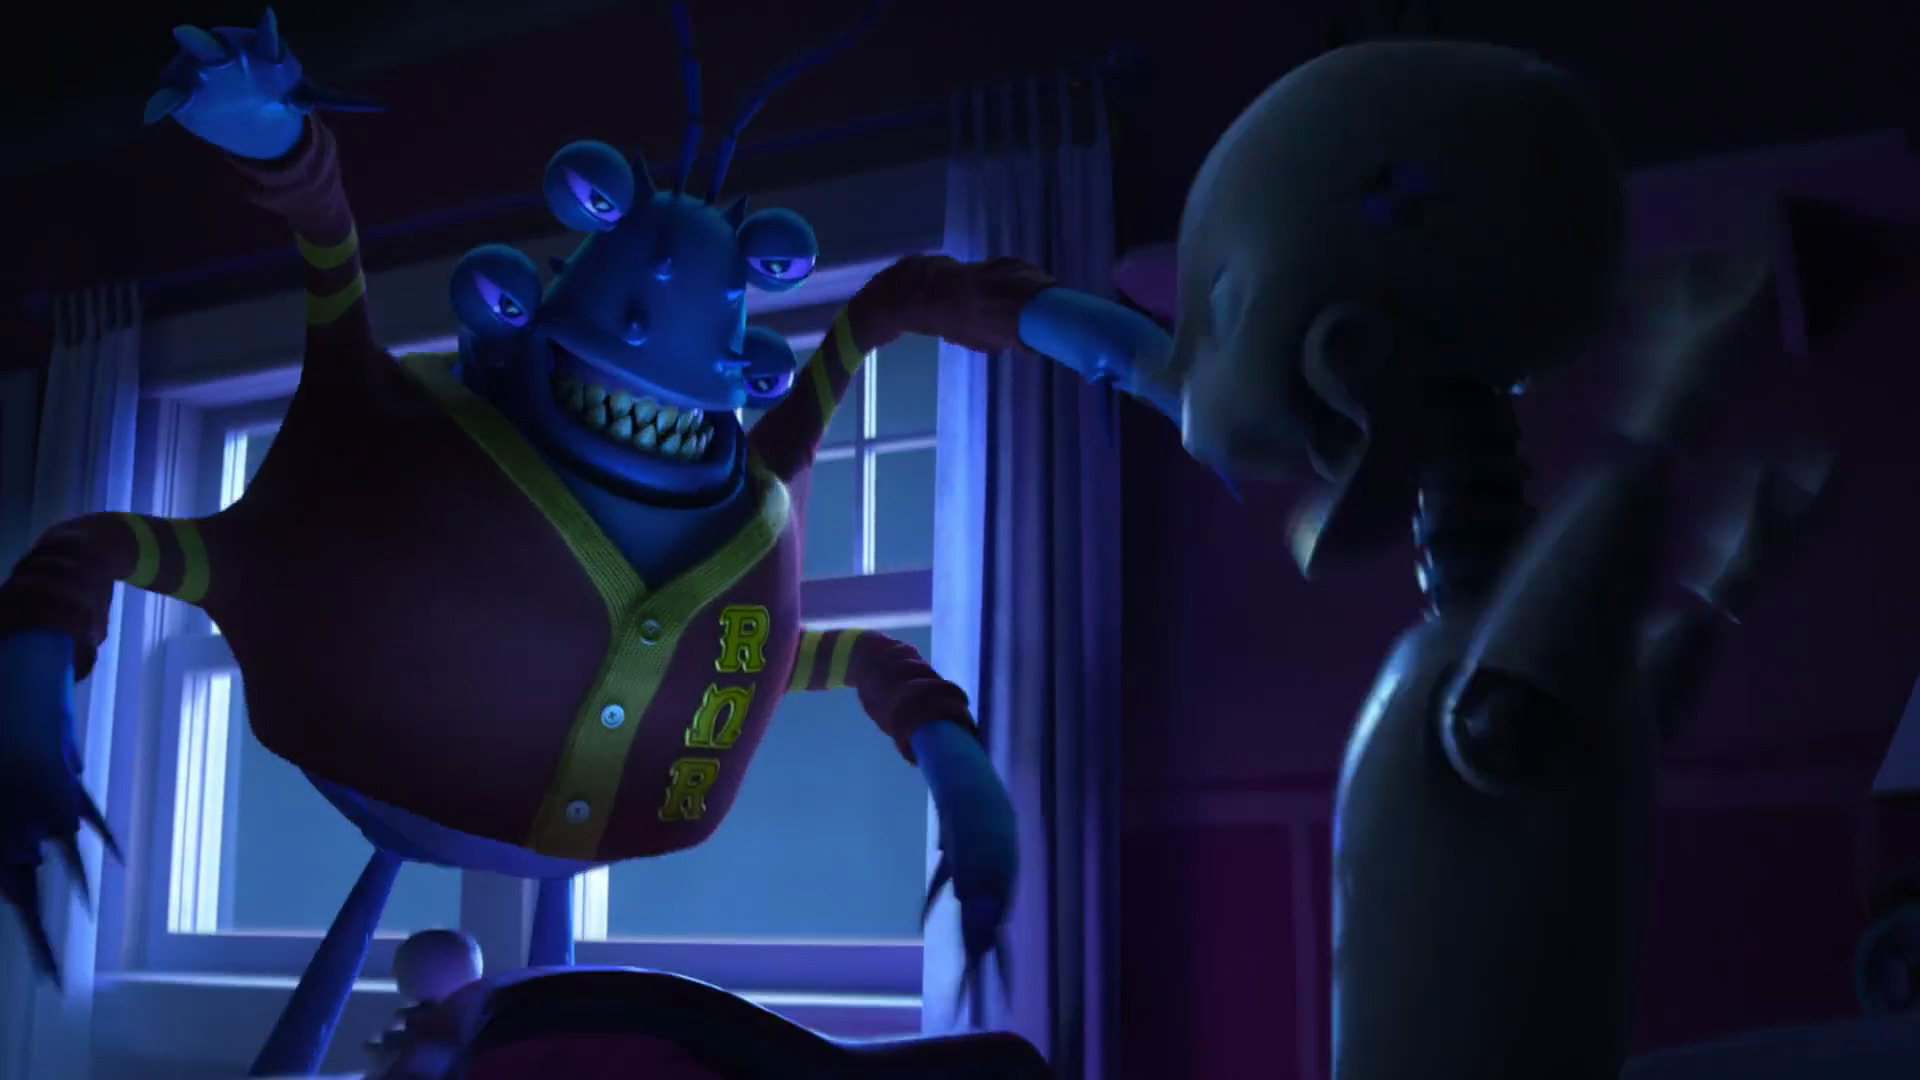 javier rios personnage character monstres academy monsters university